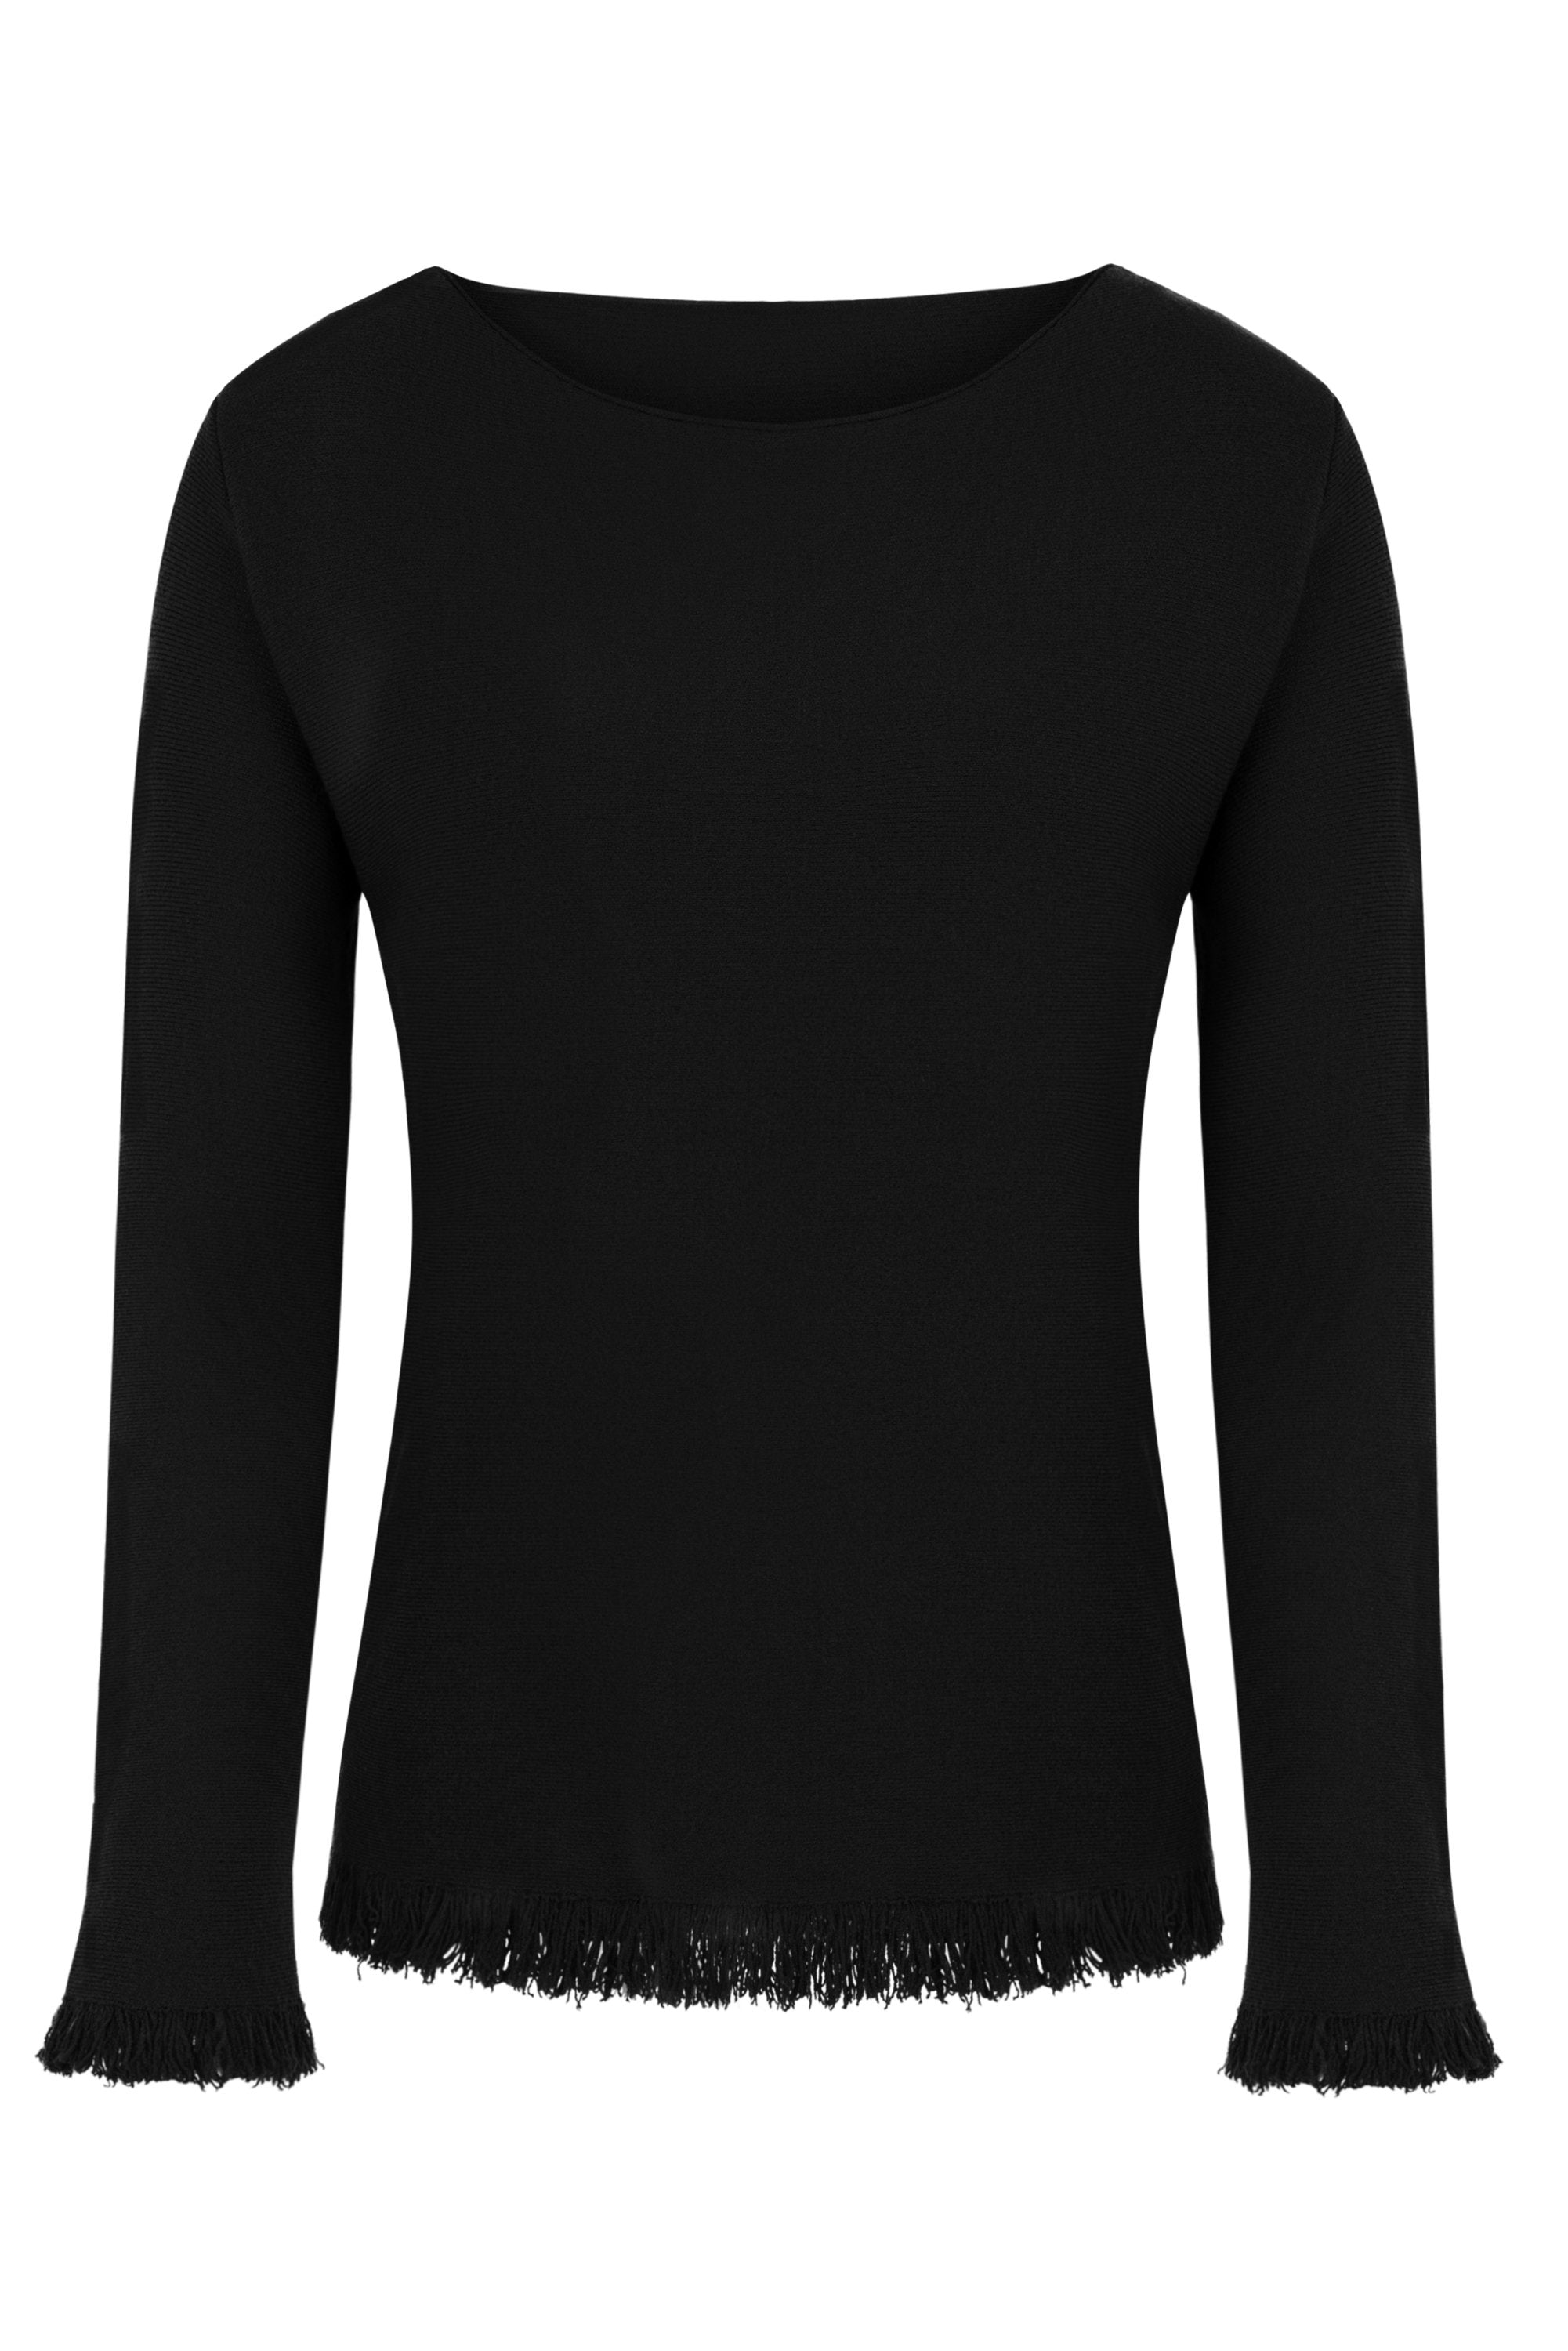 Damen Pullover Sweat mit Fransen